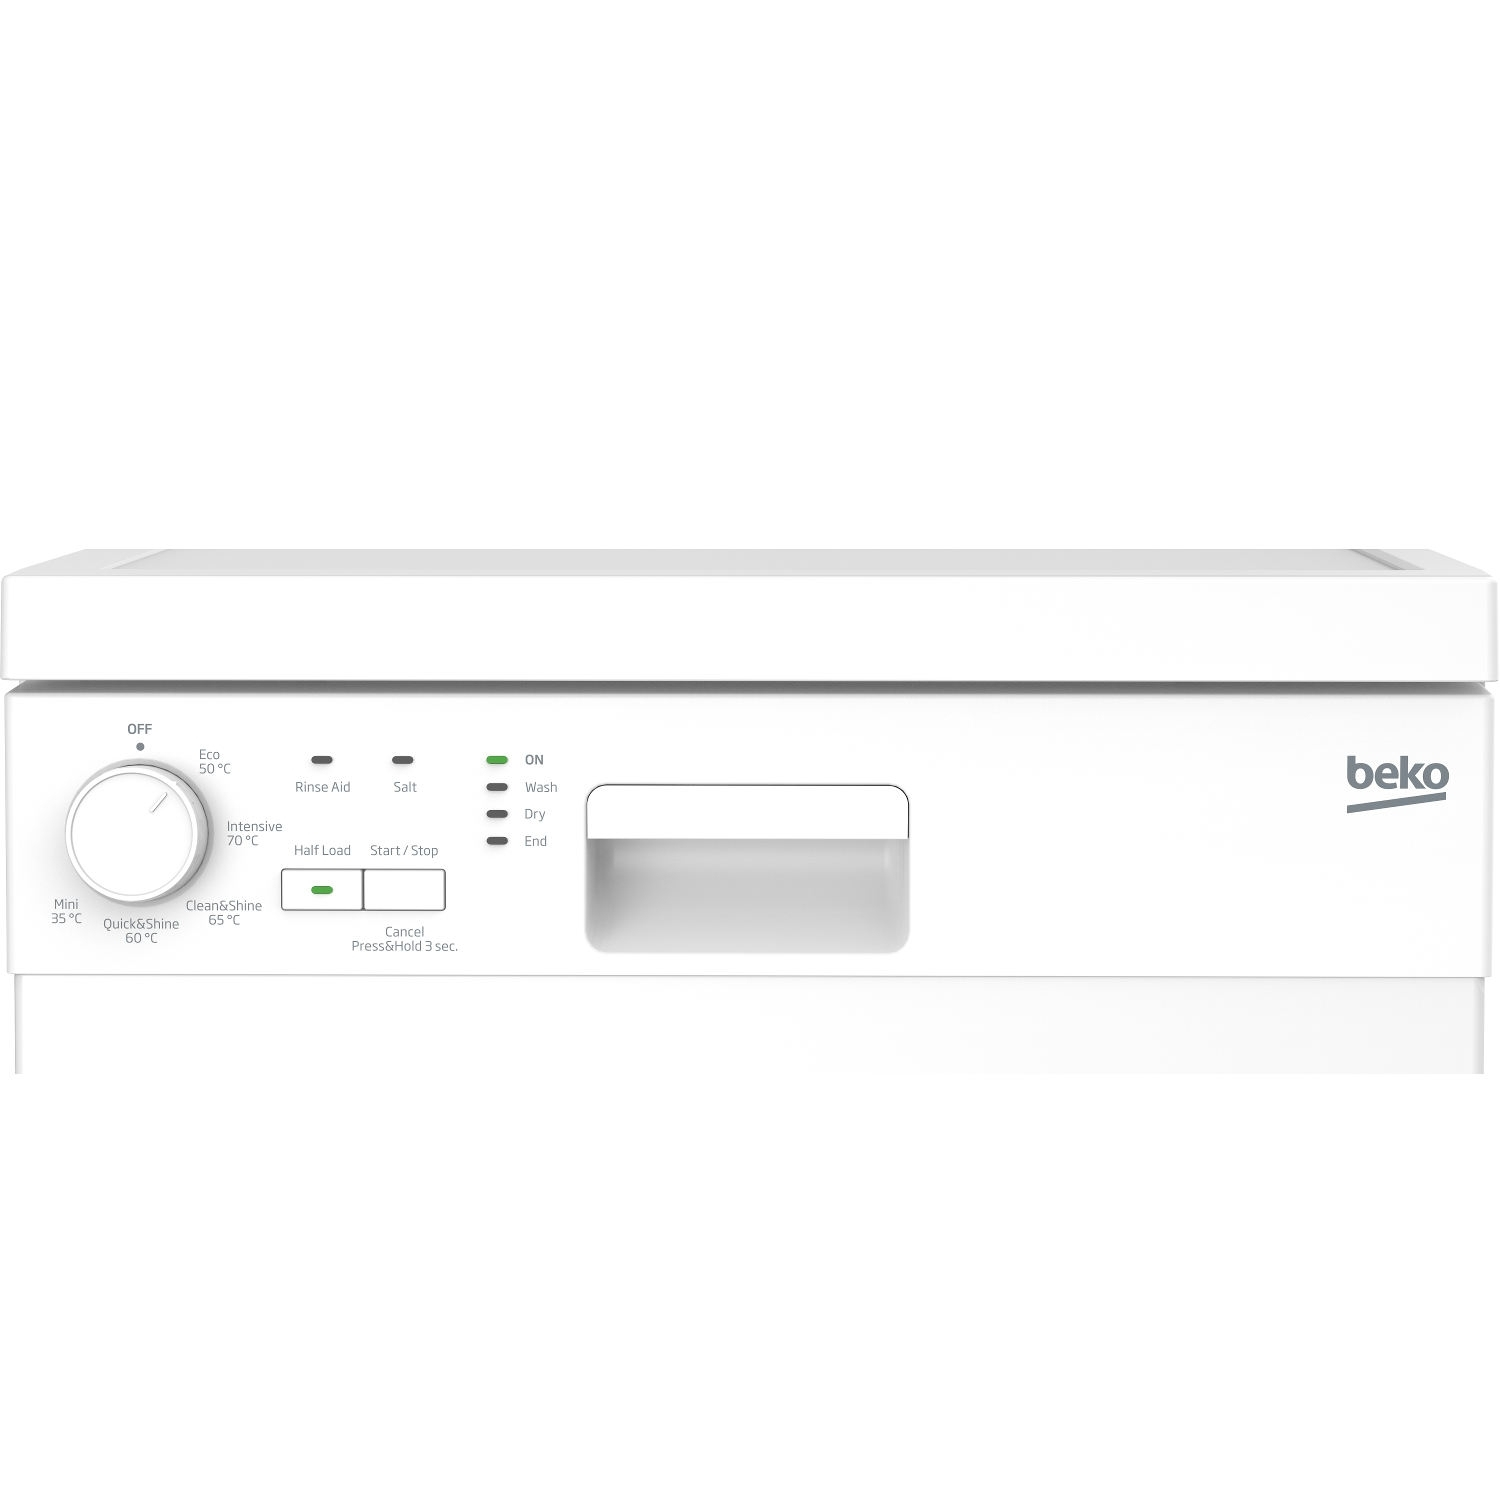 Beko Slimline Dishwasher - White - A+ Rated - 1